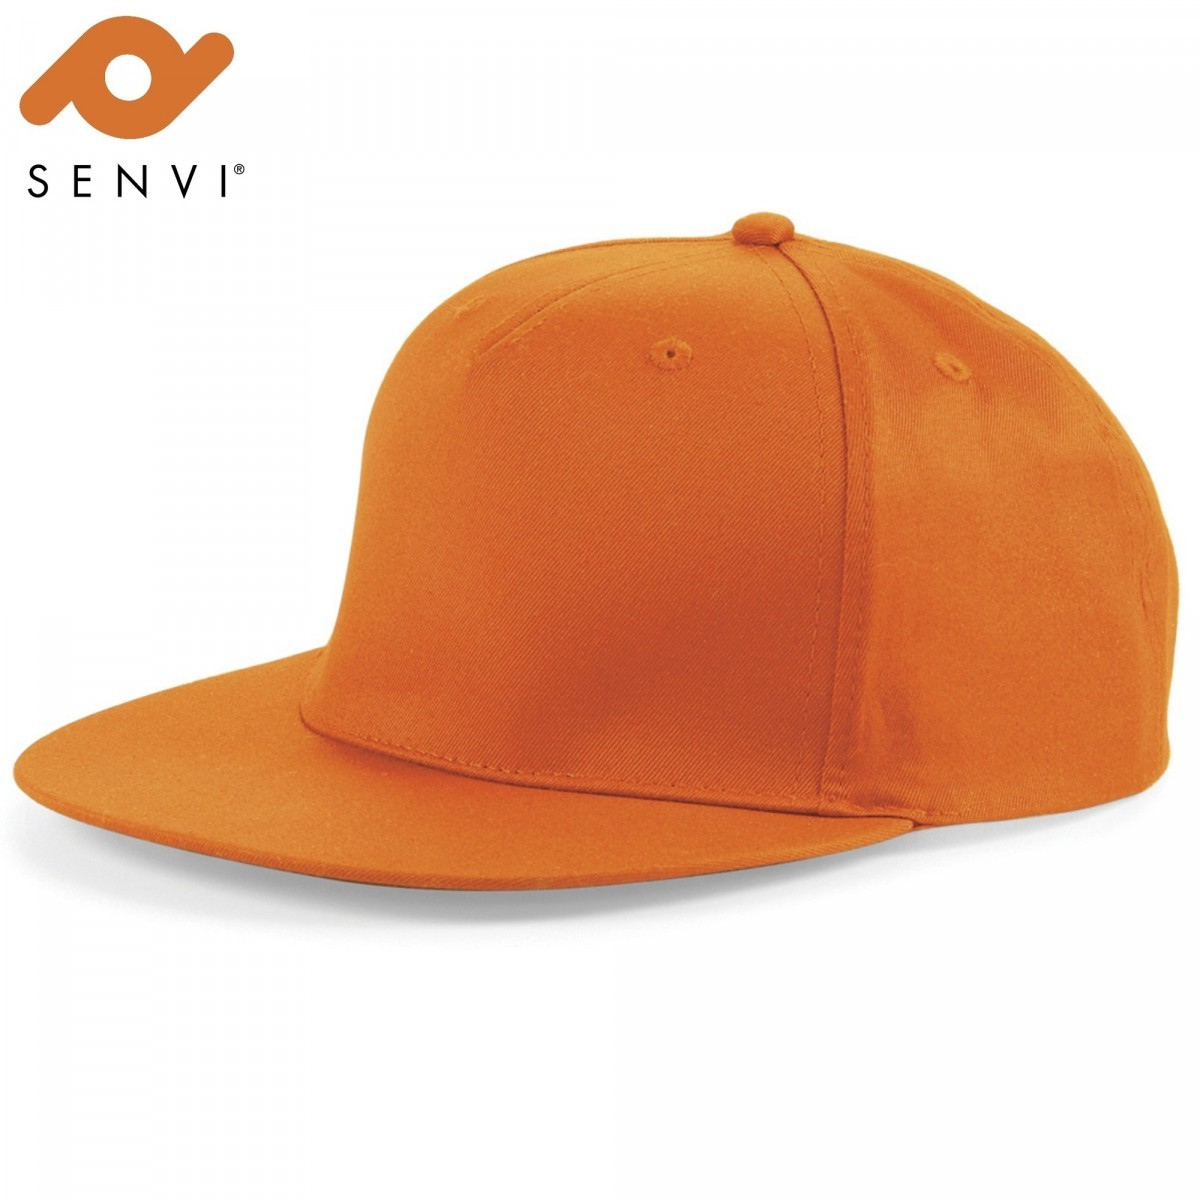 Senvi Snapback Rapper Cap Oranje (One size fits all)